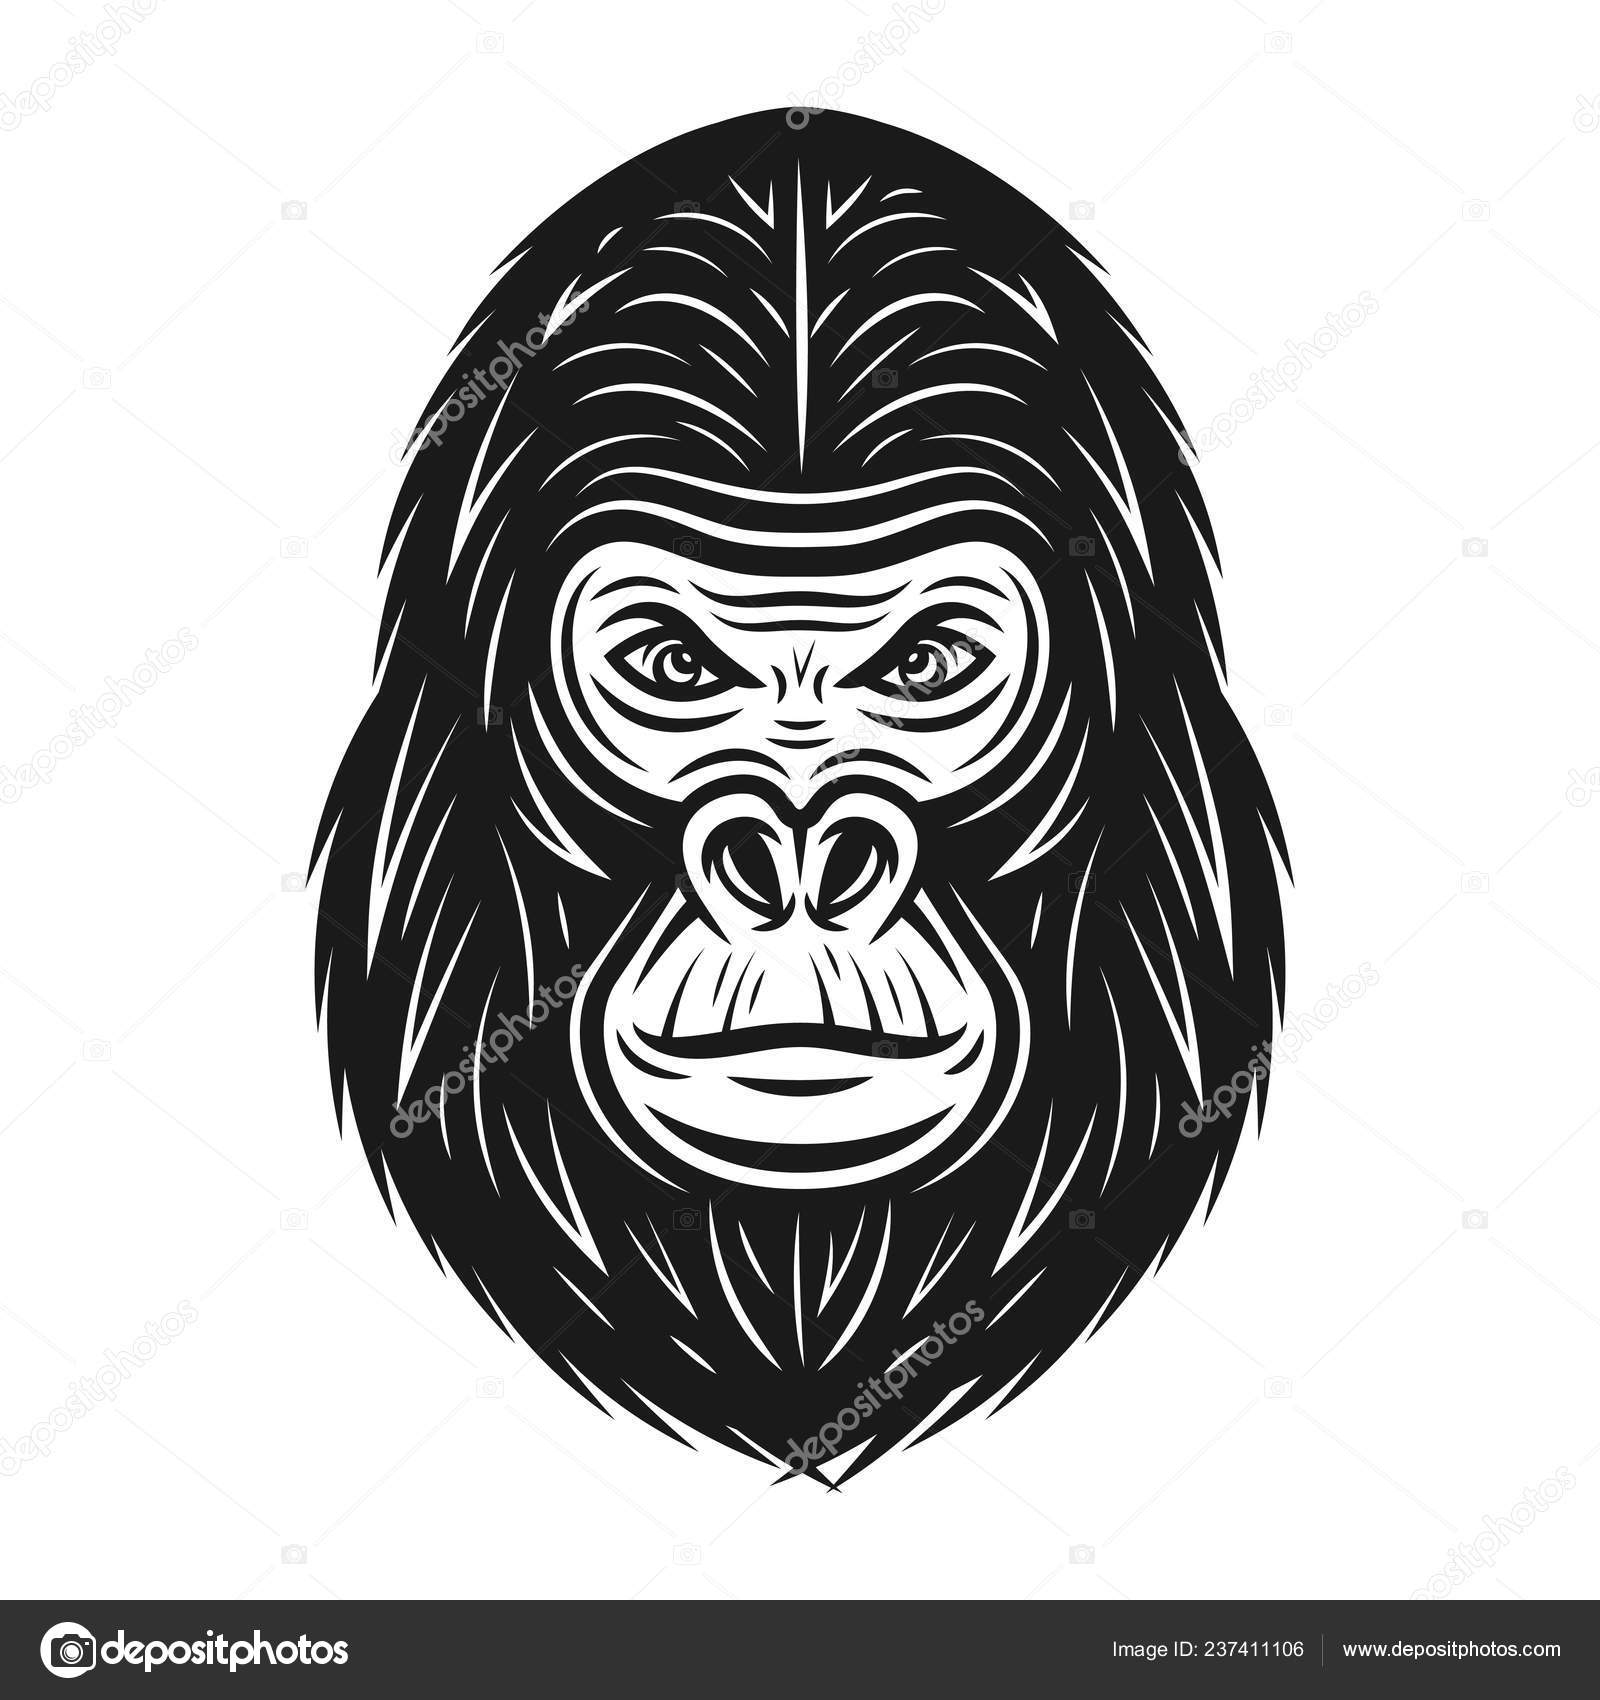 ea67e0ec0 Gorilla head vector illustration in vintage monochrome style isolated on  white background — Vector by Flat_Enot